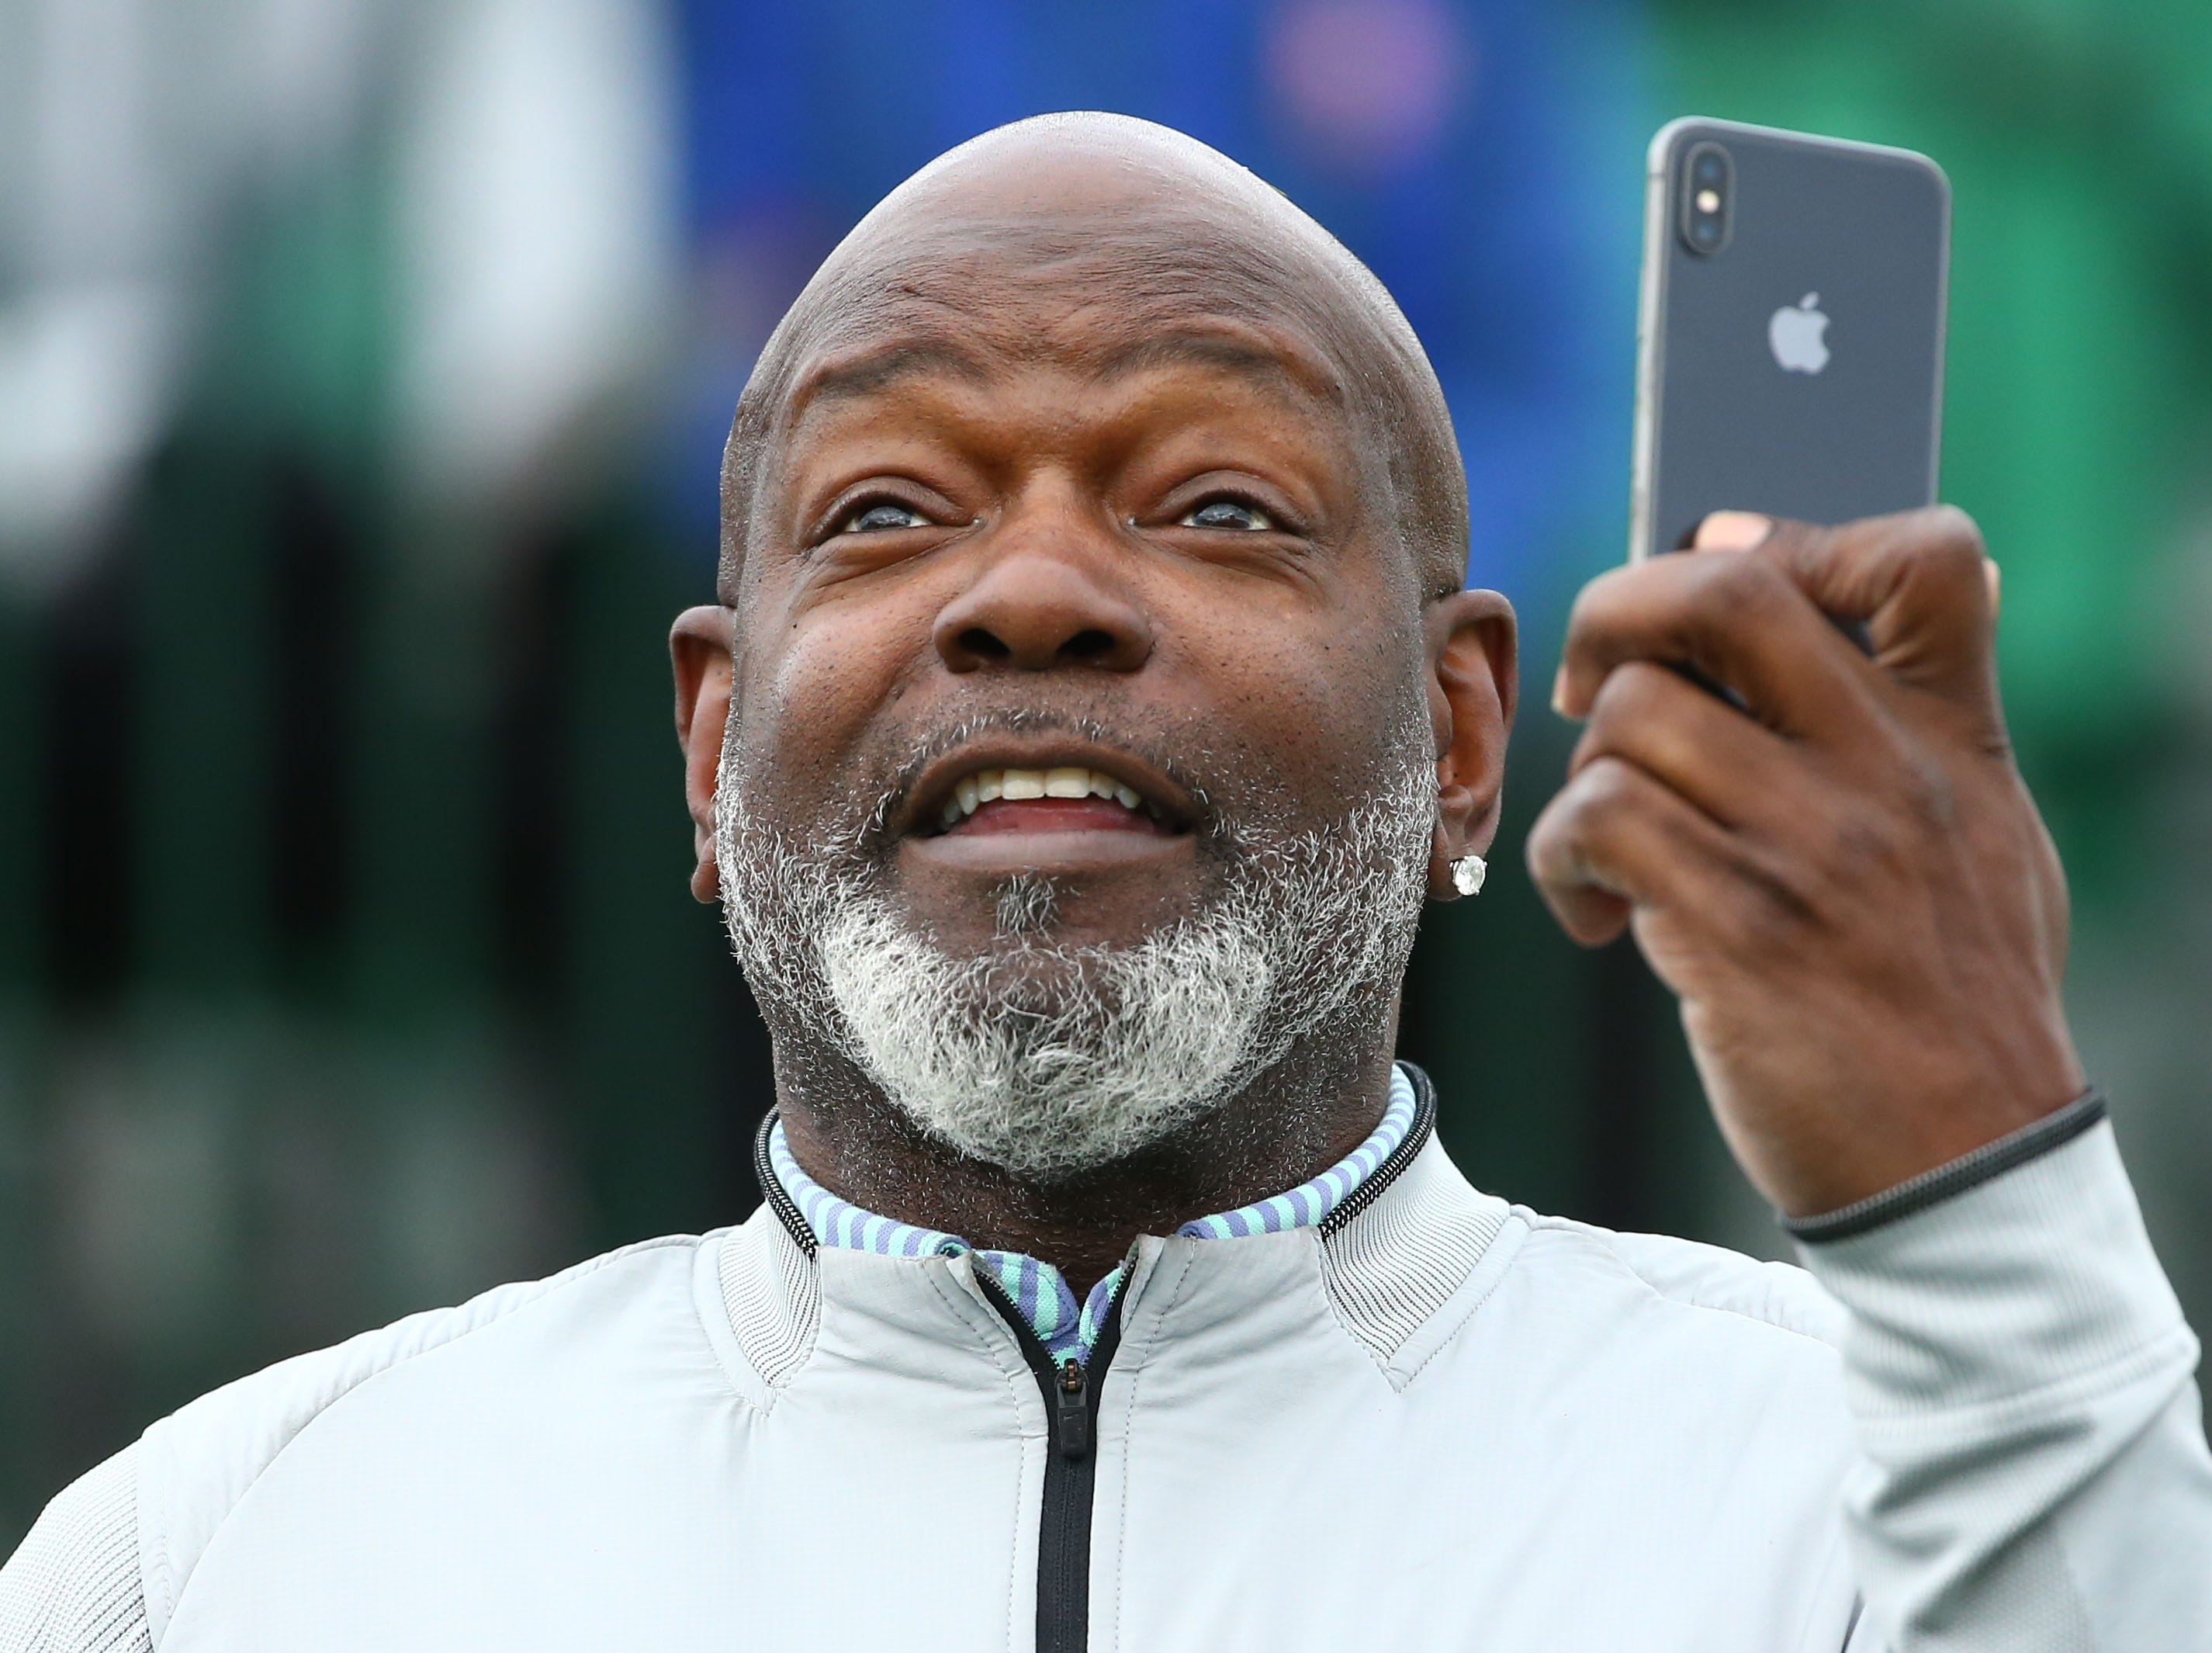 Retired NFL great Emmitt Smith makes a video on the first tee box during the Annexus Pro-Am on Jan. 30 at the TPC Scottsdale Stadium Course.